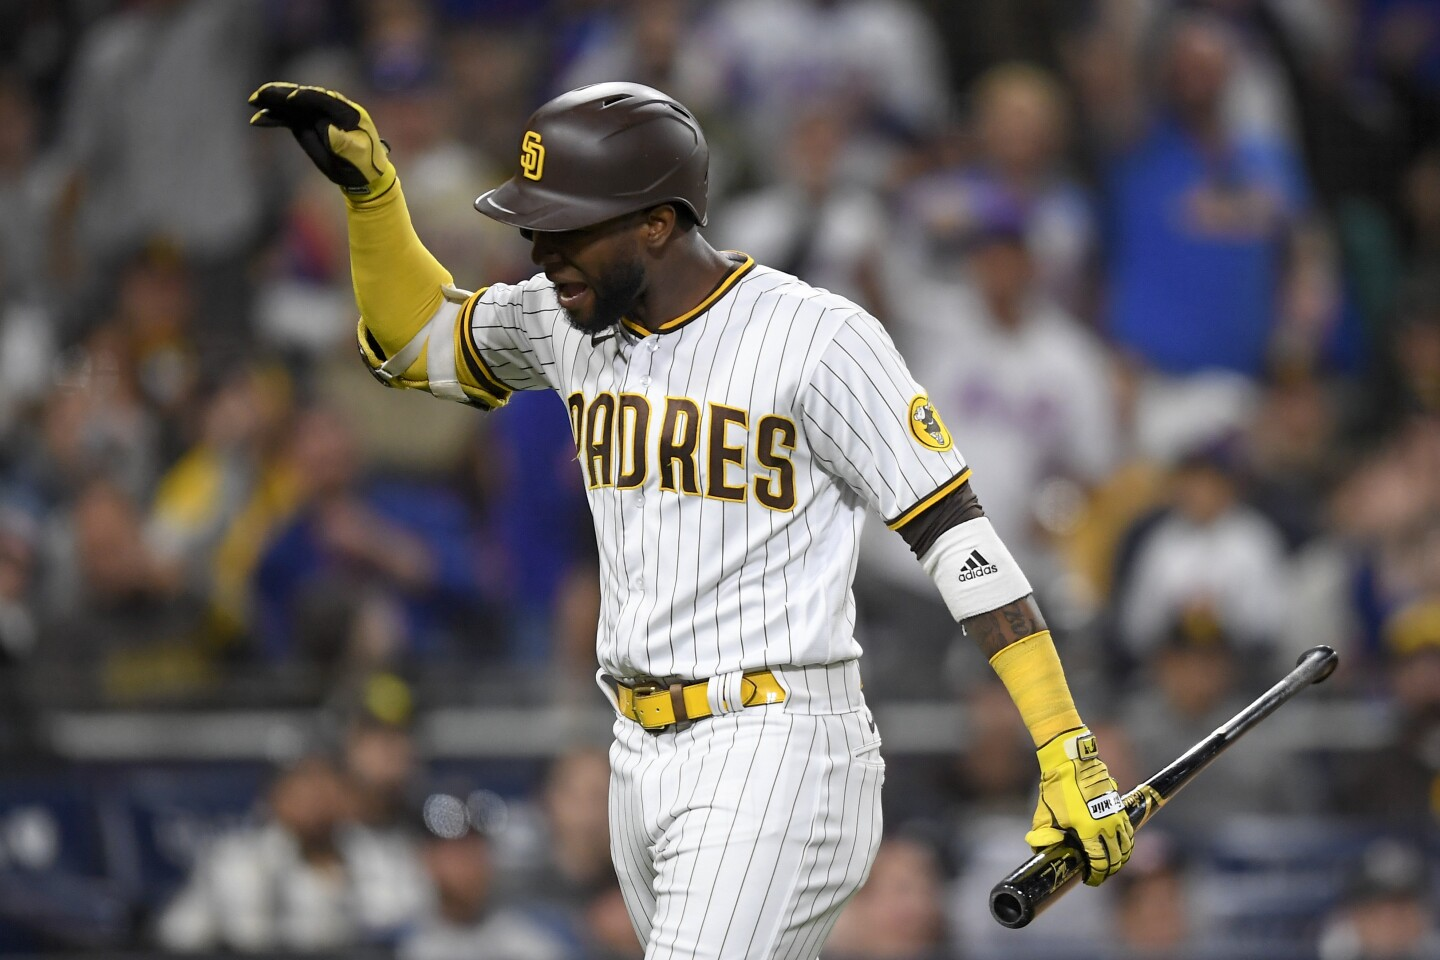 SAN DIEGO, CA - JUNE 5: Jurickson Profar #10 of the San Diego Padres reacts after being ejected during the eighth inning of a baseball game against New York Mets at Petco Park on June 5, 2021 in San Diego, California. (Photo by Denis Poroy/Getty Images)